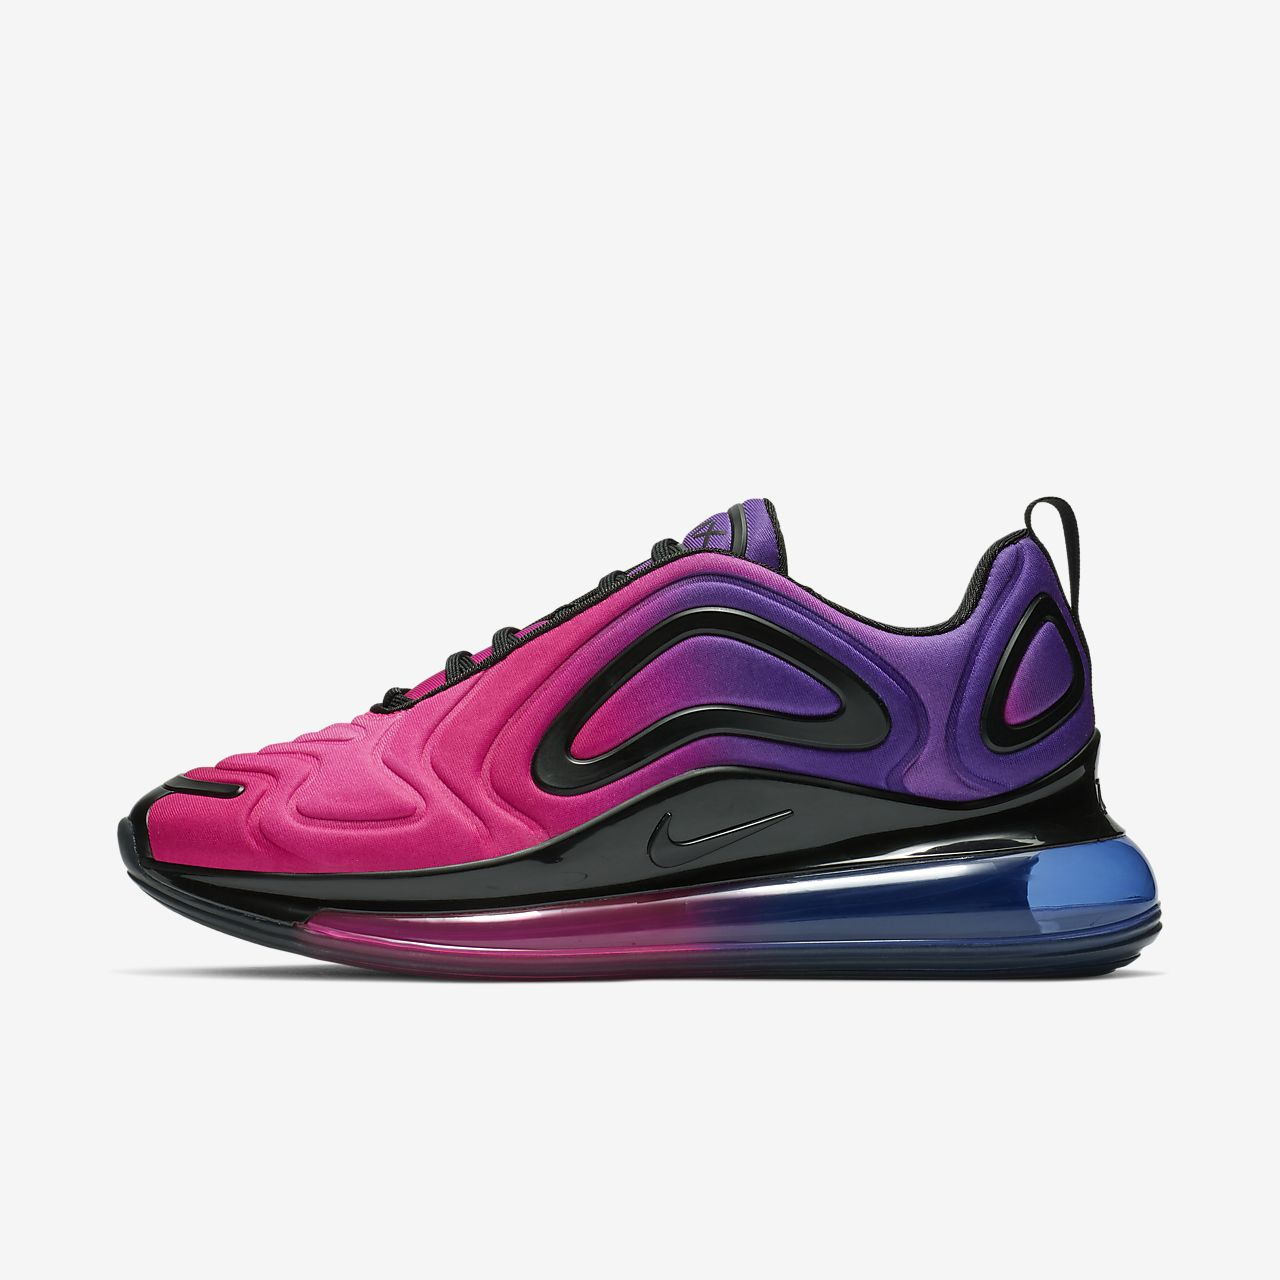 0a445645fb8 Nike Air Max 720 Women s Shoe. Nike.com BE